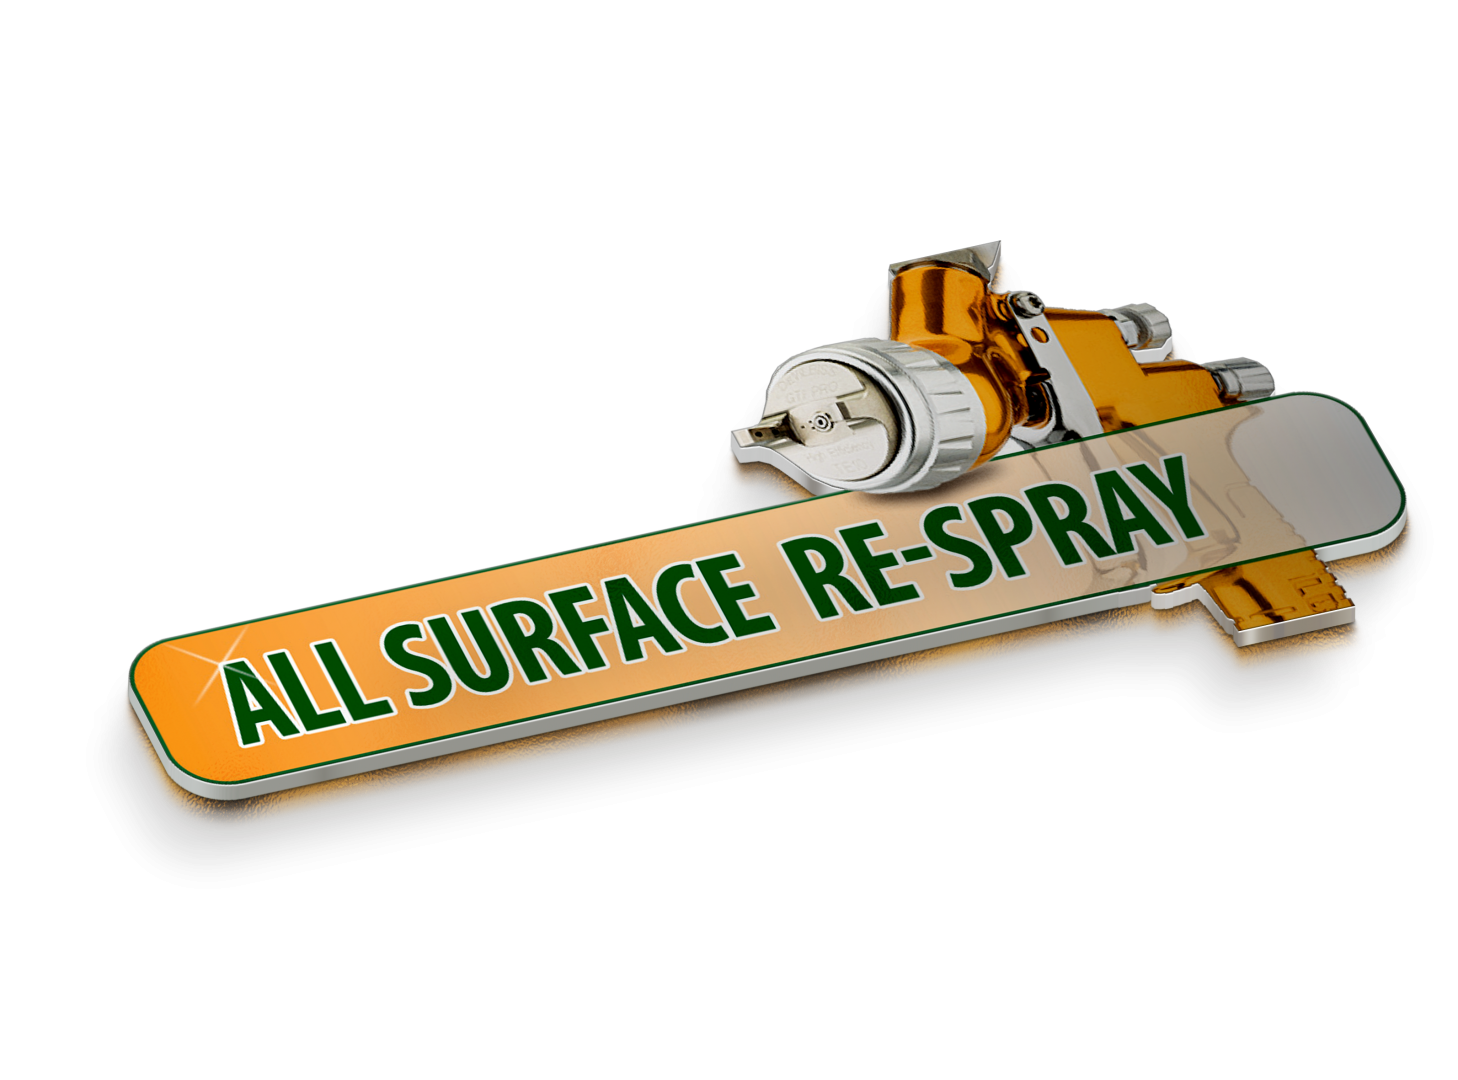 spray - All Surface Respray logo